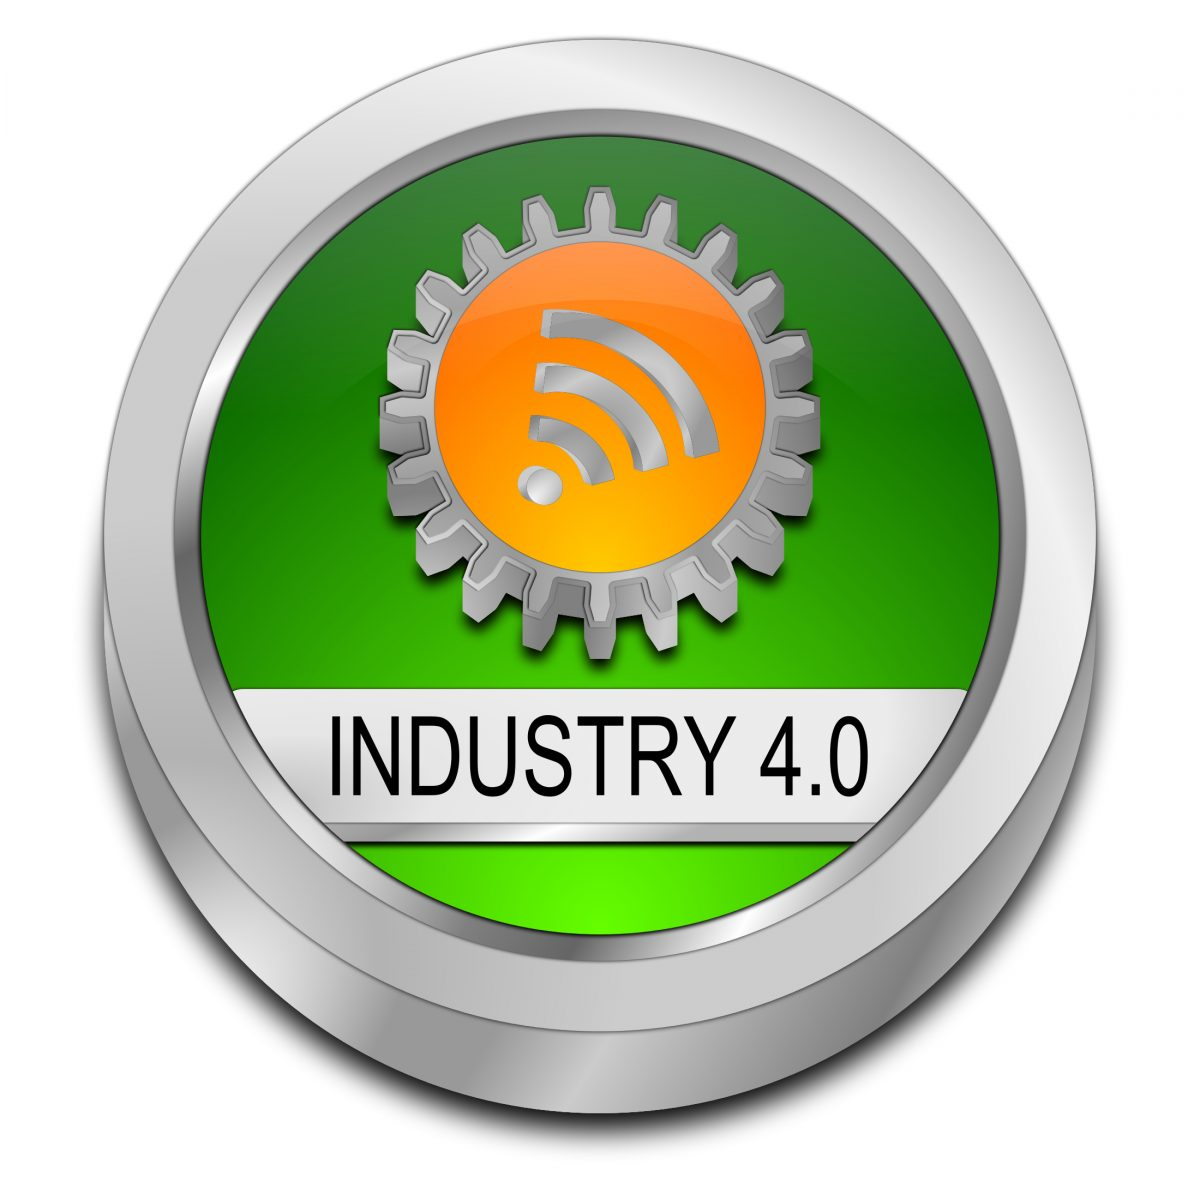 Industry 4.0: The Future of Manufacturing?